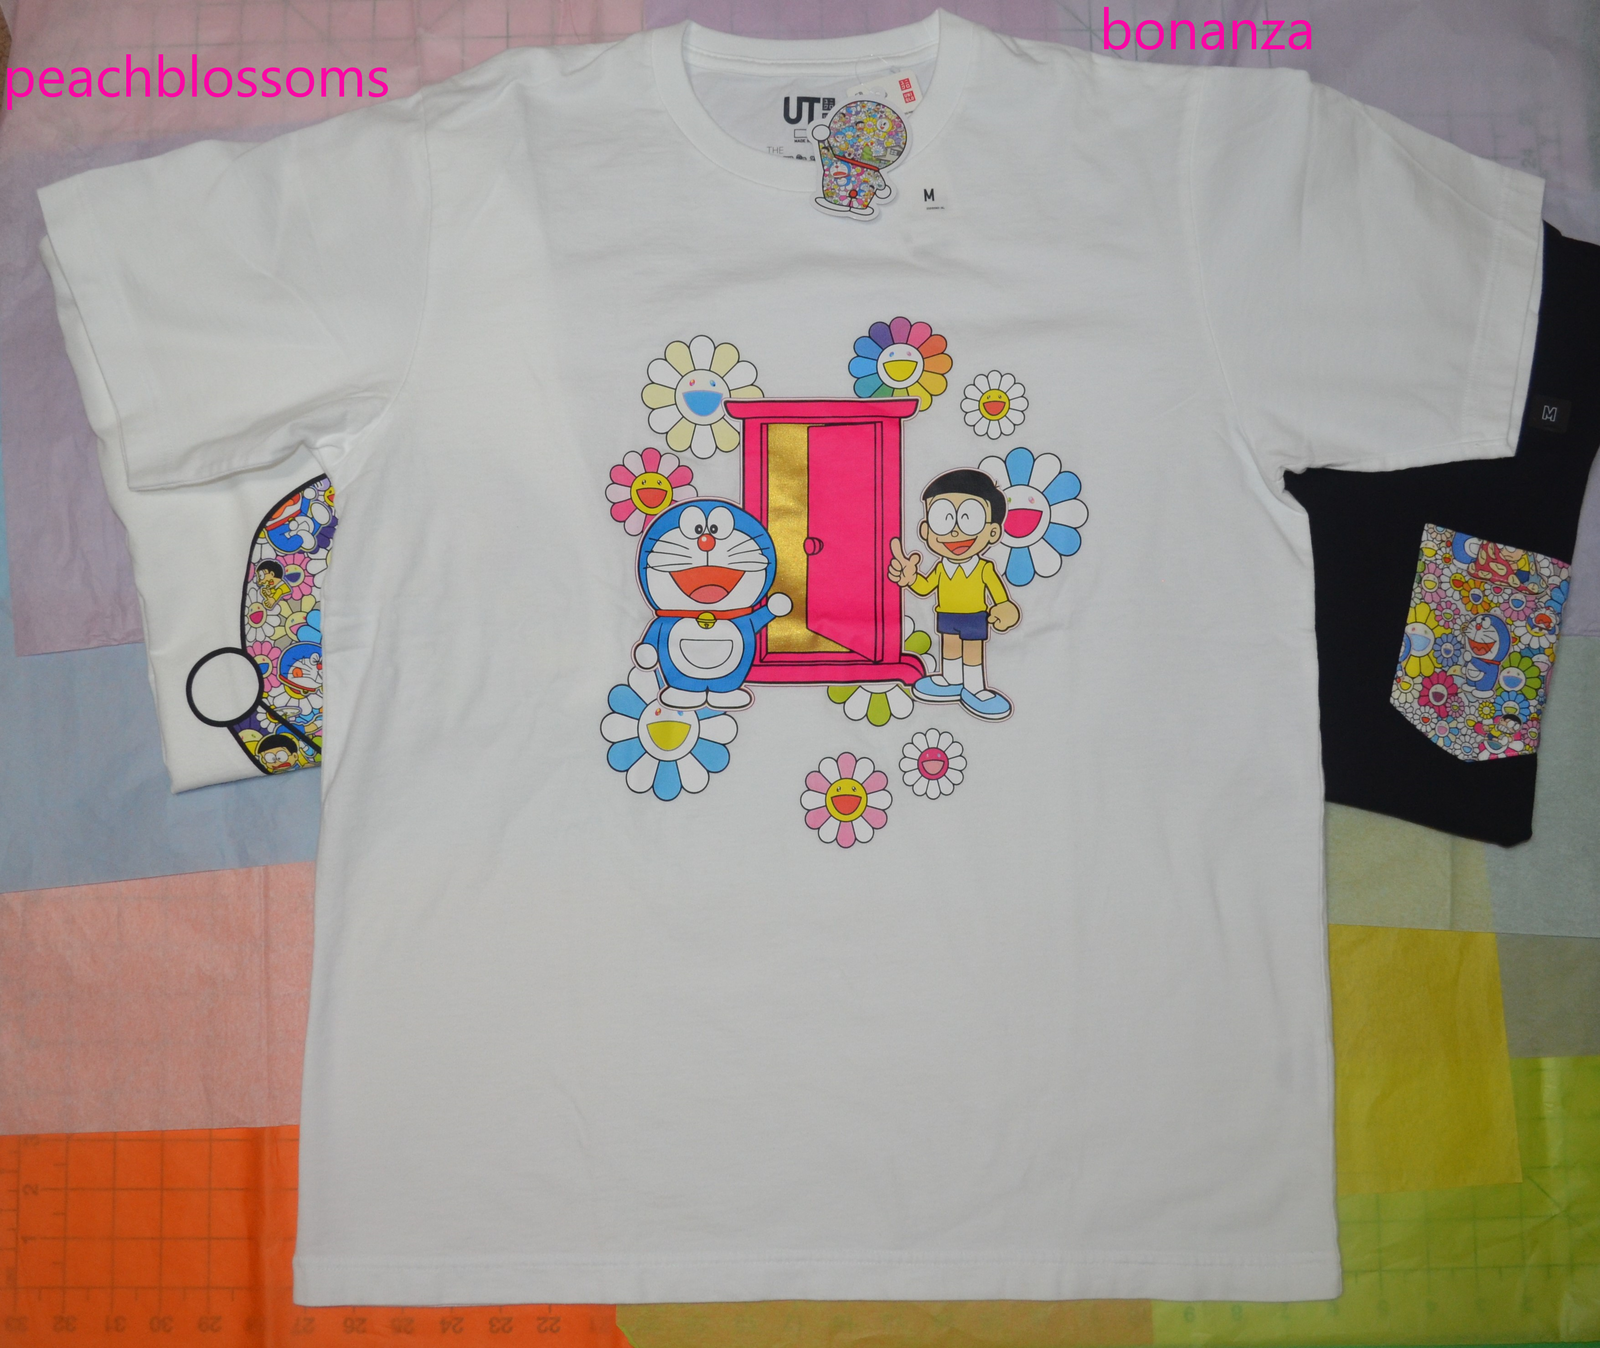 52c2a20b Uniqlo Doraemon x Takashi Murakami Short Sleeve Graphic T-shirt Door Size M  BNWT